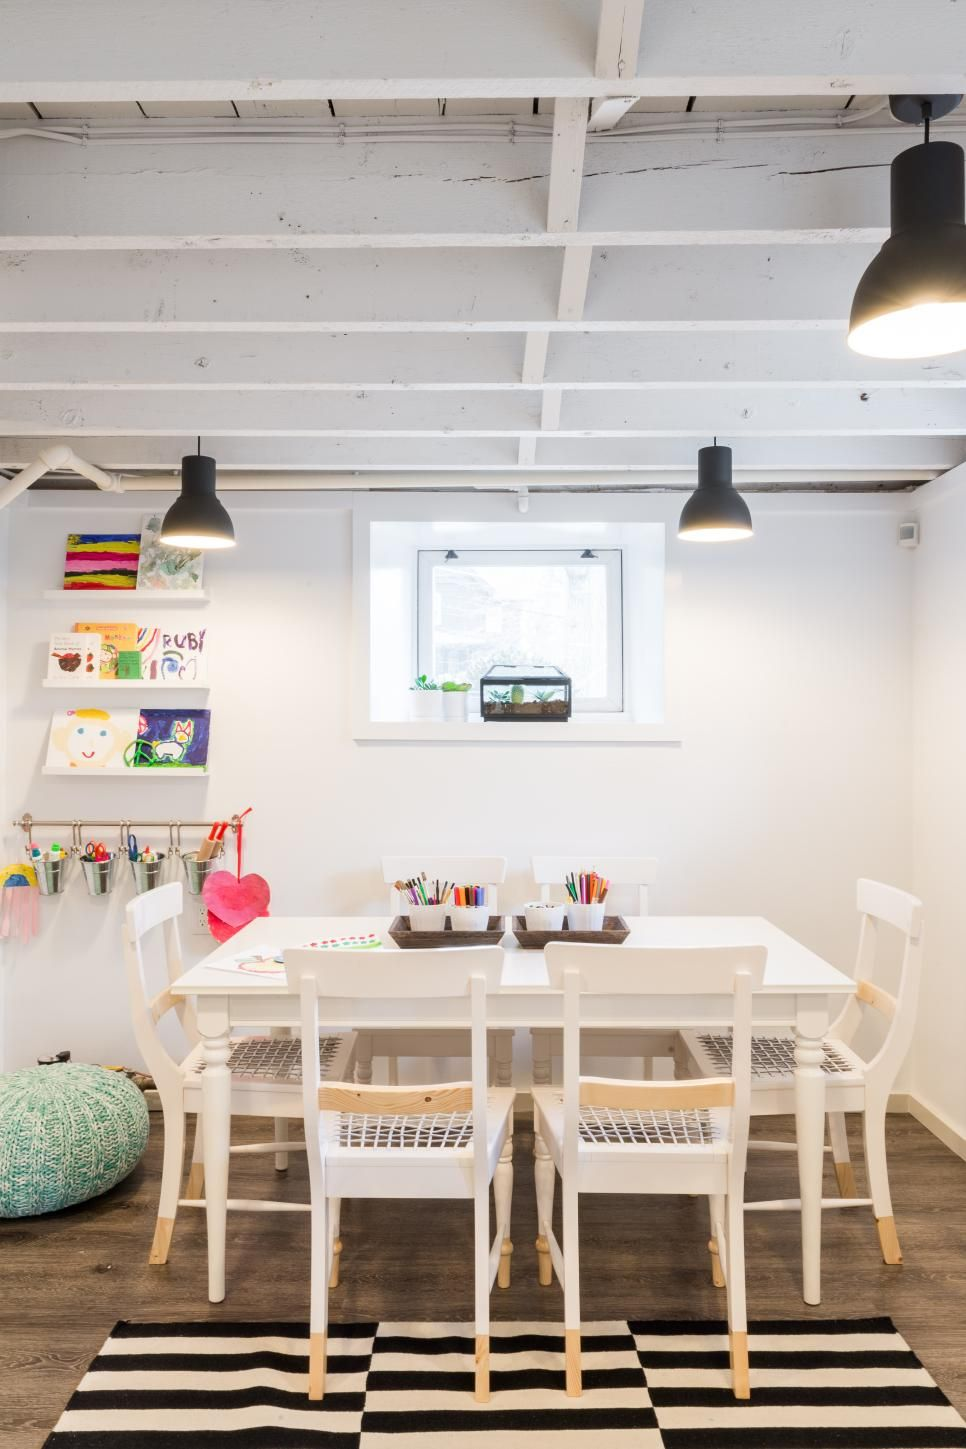 HGTV Presents A Fun Art Studio For Kids In The Low Ceiling Basement Of A Amazing Ideas